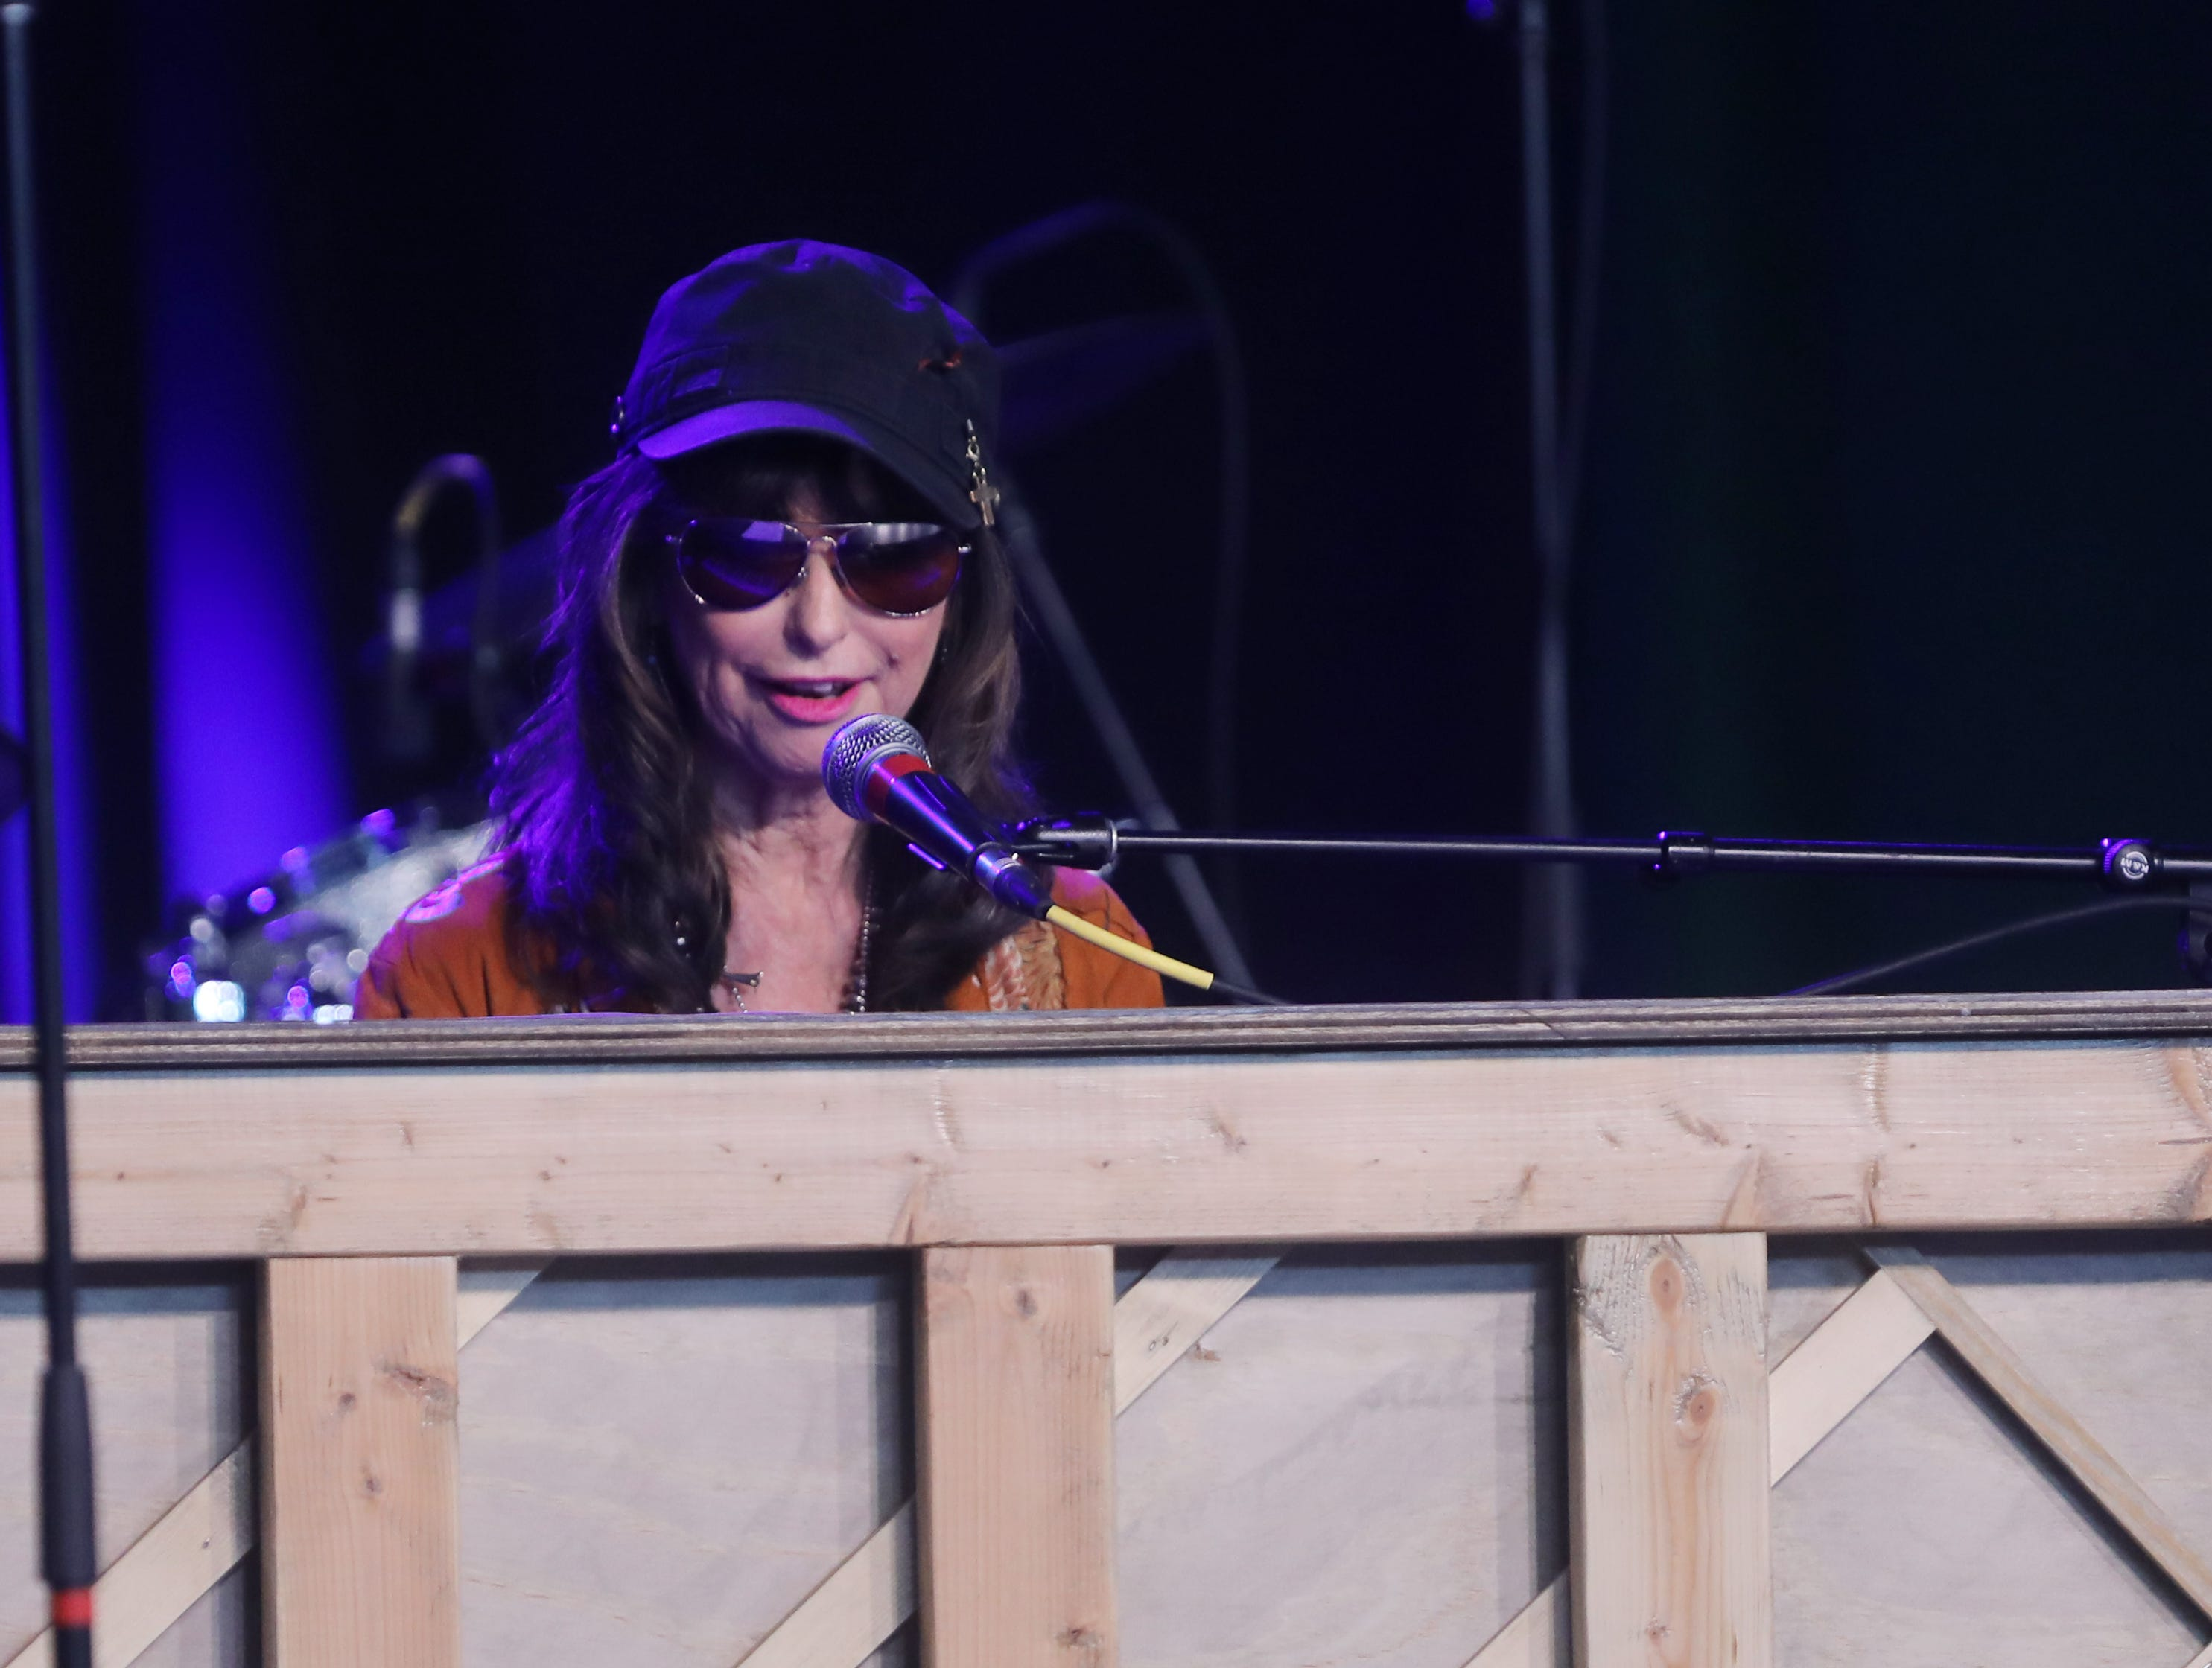 Jessi Colter performs during a Celebration of Life service held for singer-songwriter Tony Joe White at Marathon Music Works Wednesday, October 31, 2018.